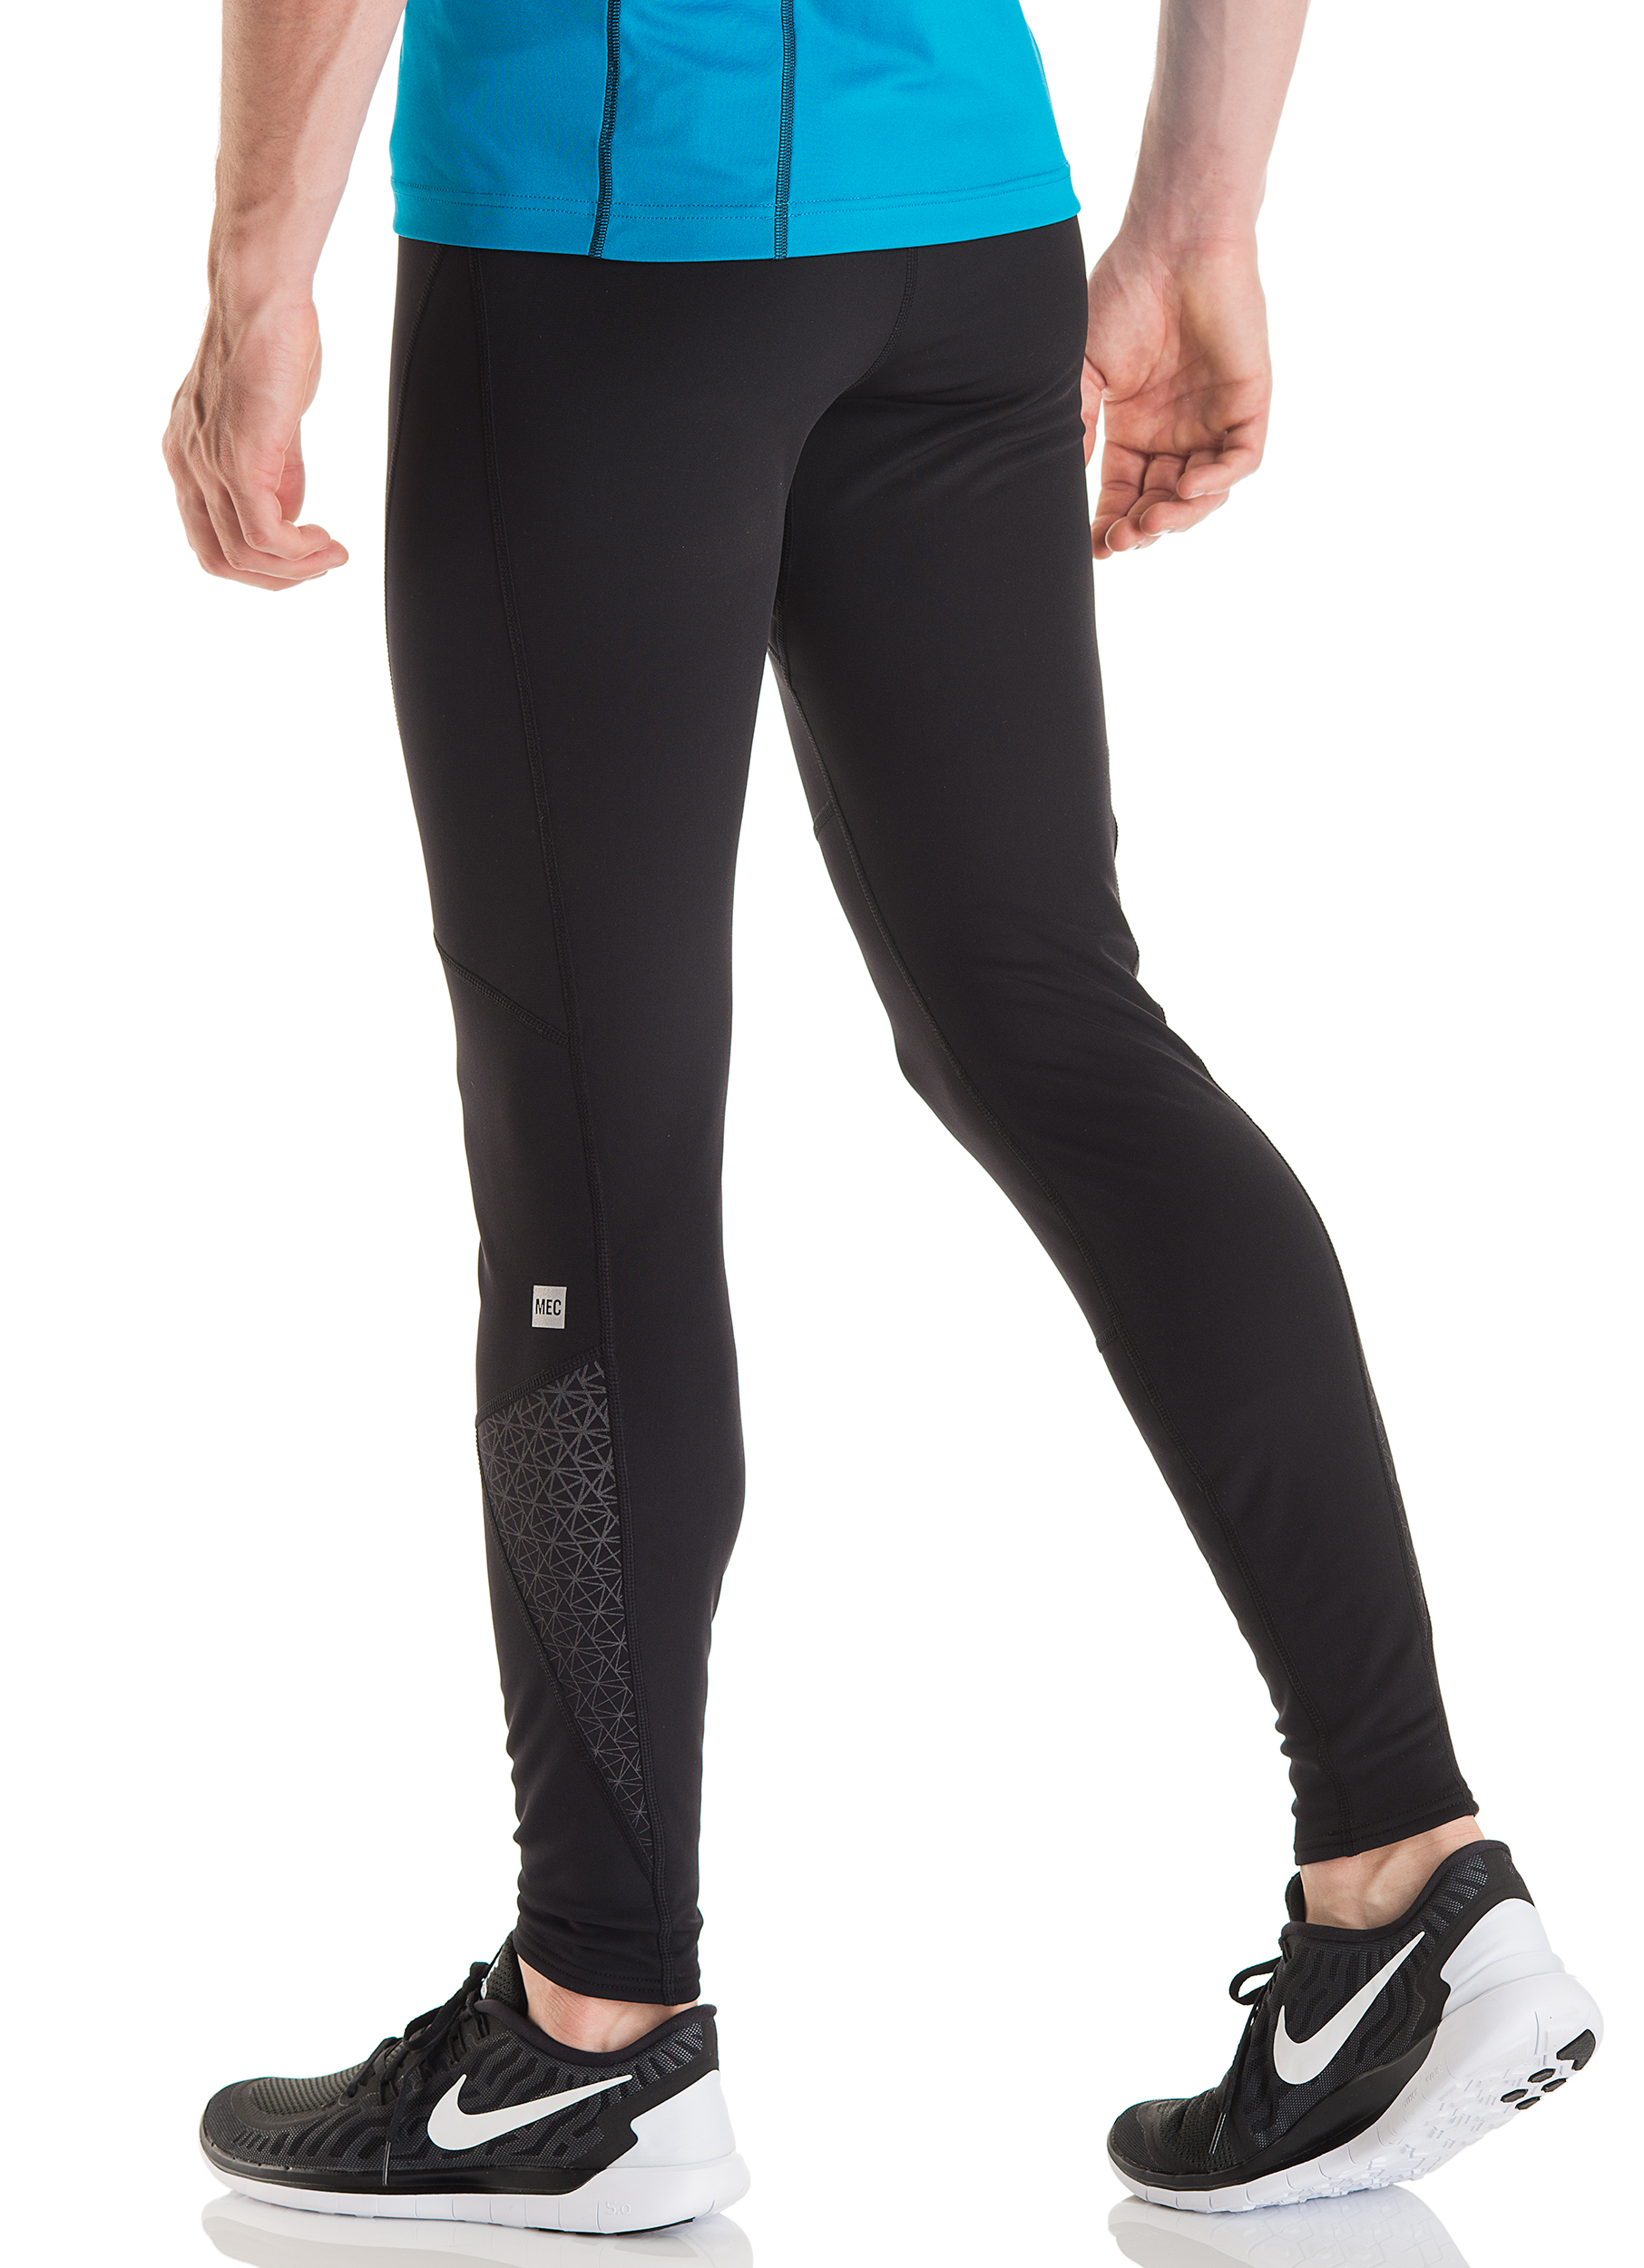 f0cc16f70b MEC Mercury 2 Thermal Tights - Men's